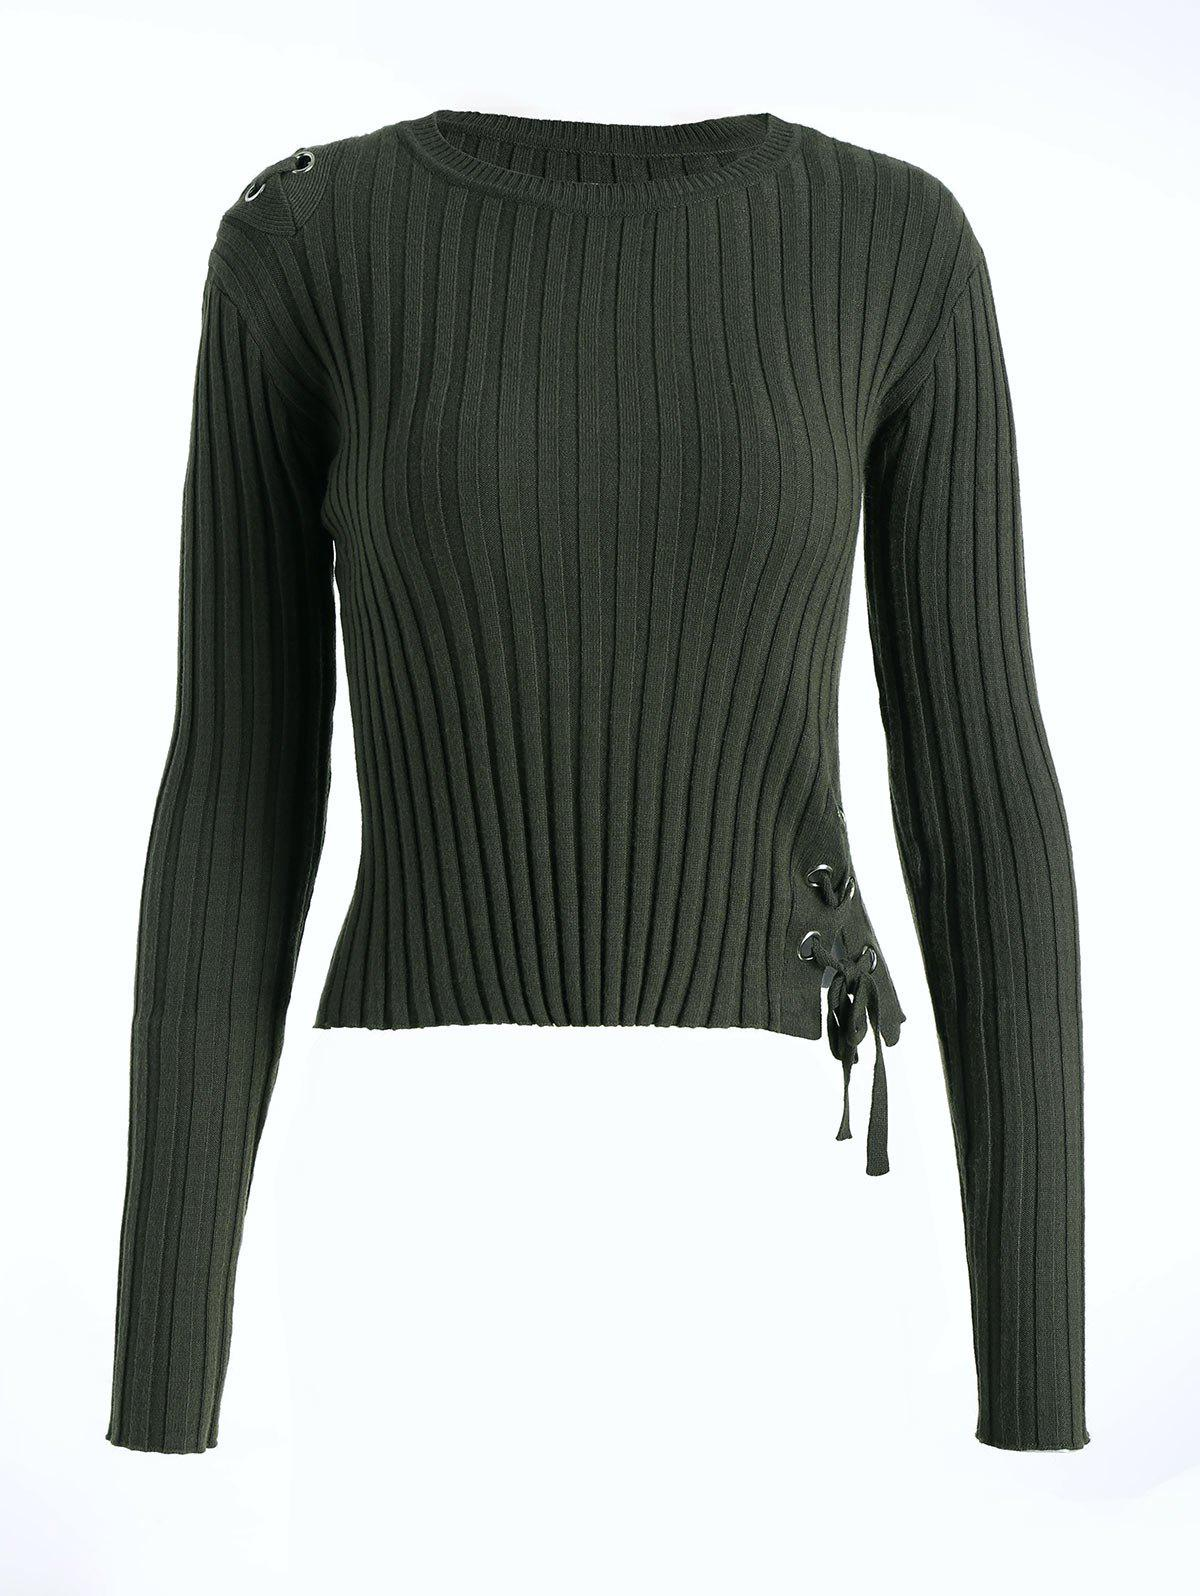 Ribbed Lace Up Sweater 221837301